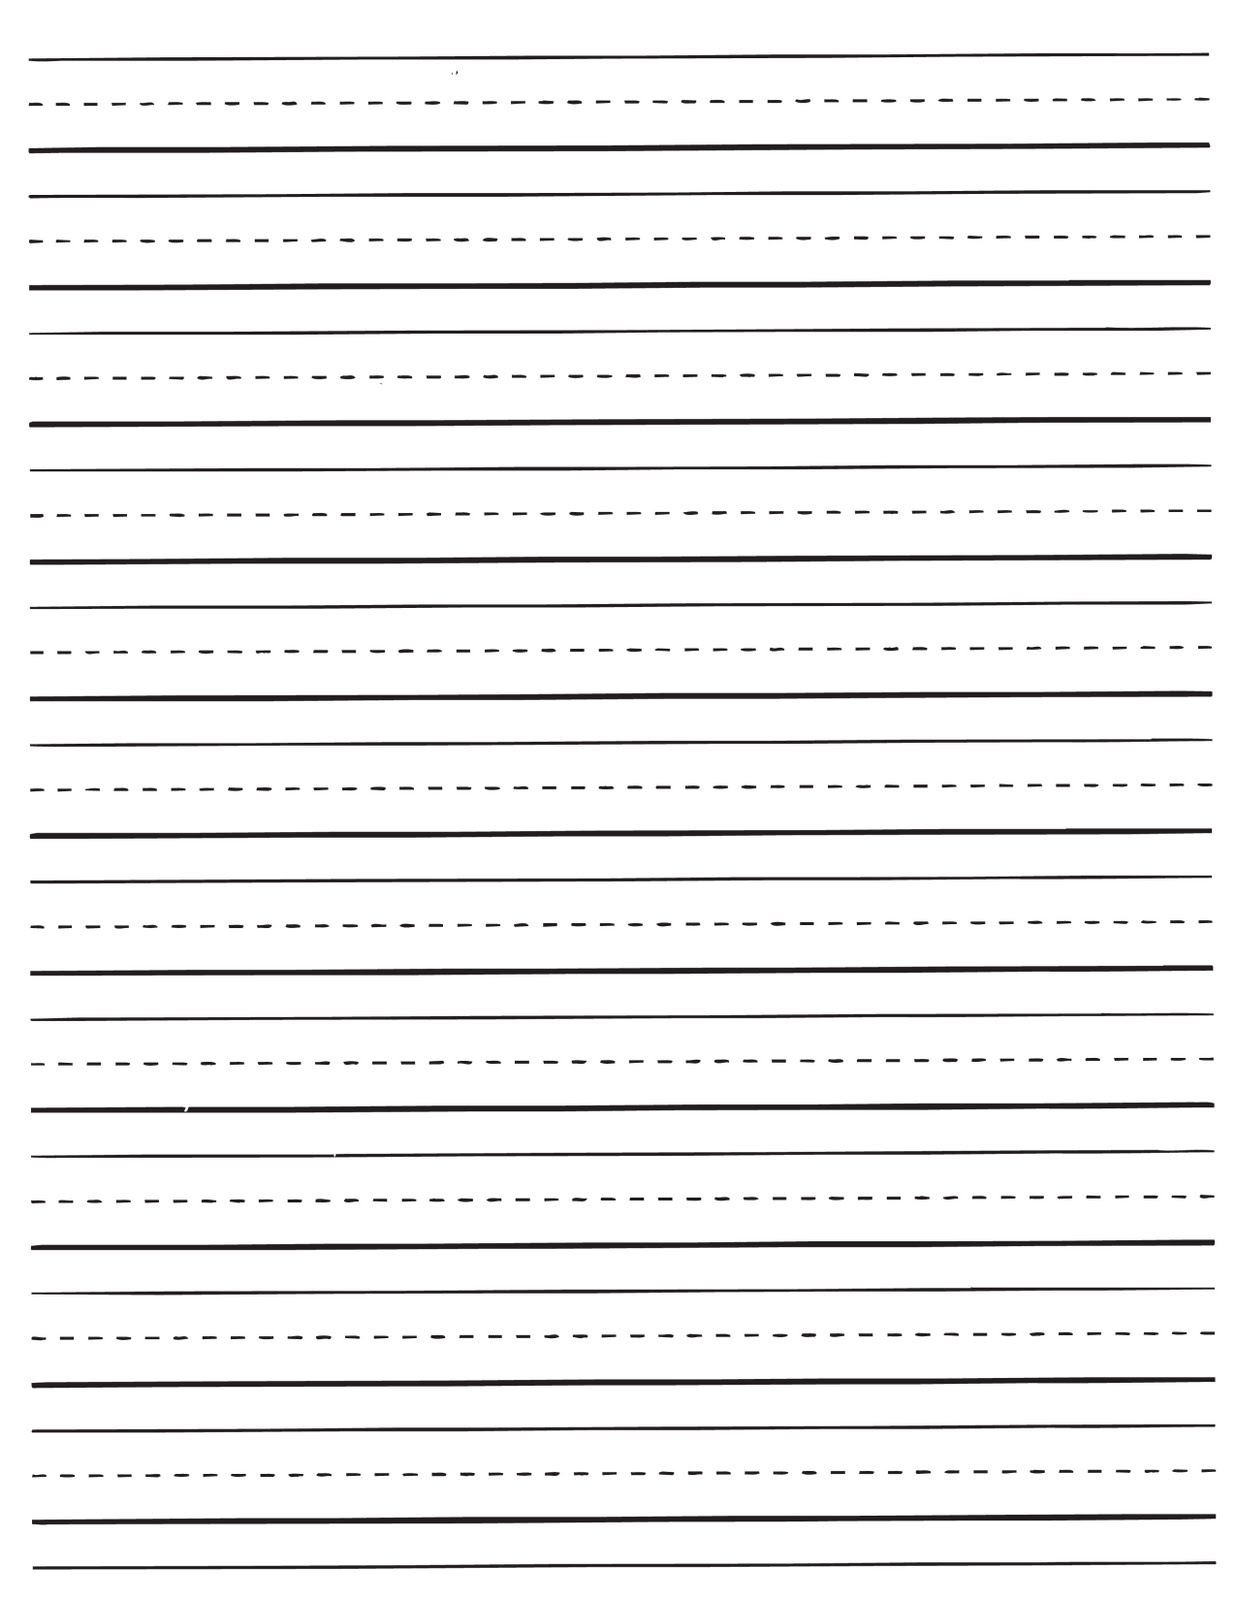 Free Printable Lined Paper For Kindergarten - Demir.iso-Consulting.co - Free Printable Kindergarten Lined Paper Template